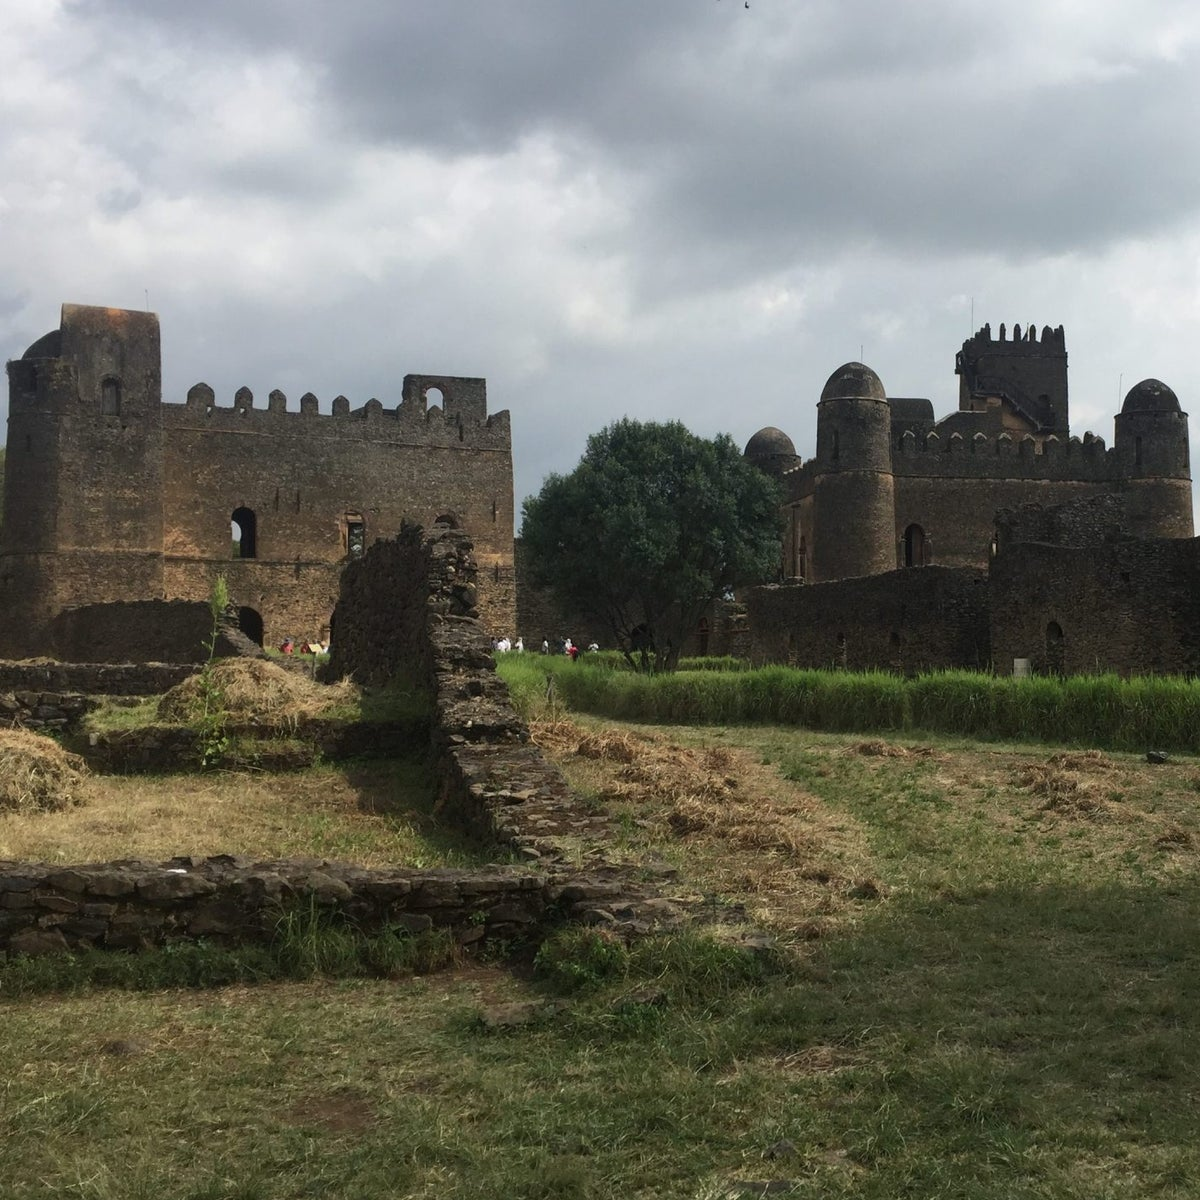 Castle ruins in Gondar, Ethiopia. Royal castles and palaces attest to Gondar's role as capital of Ethiopia in the 17th and 18th centuries, Oct. 7, 2017.